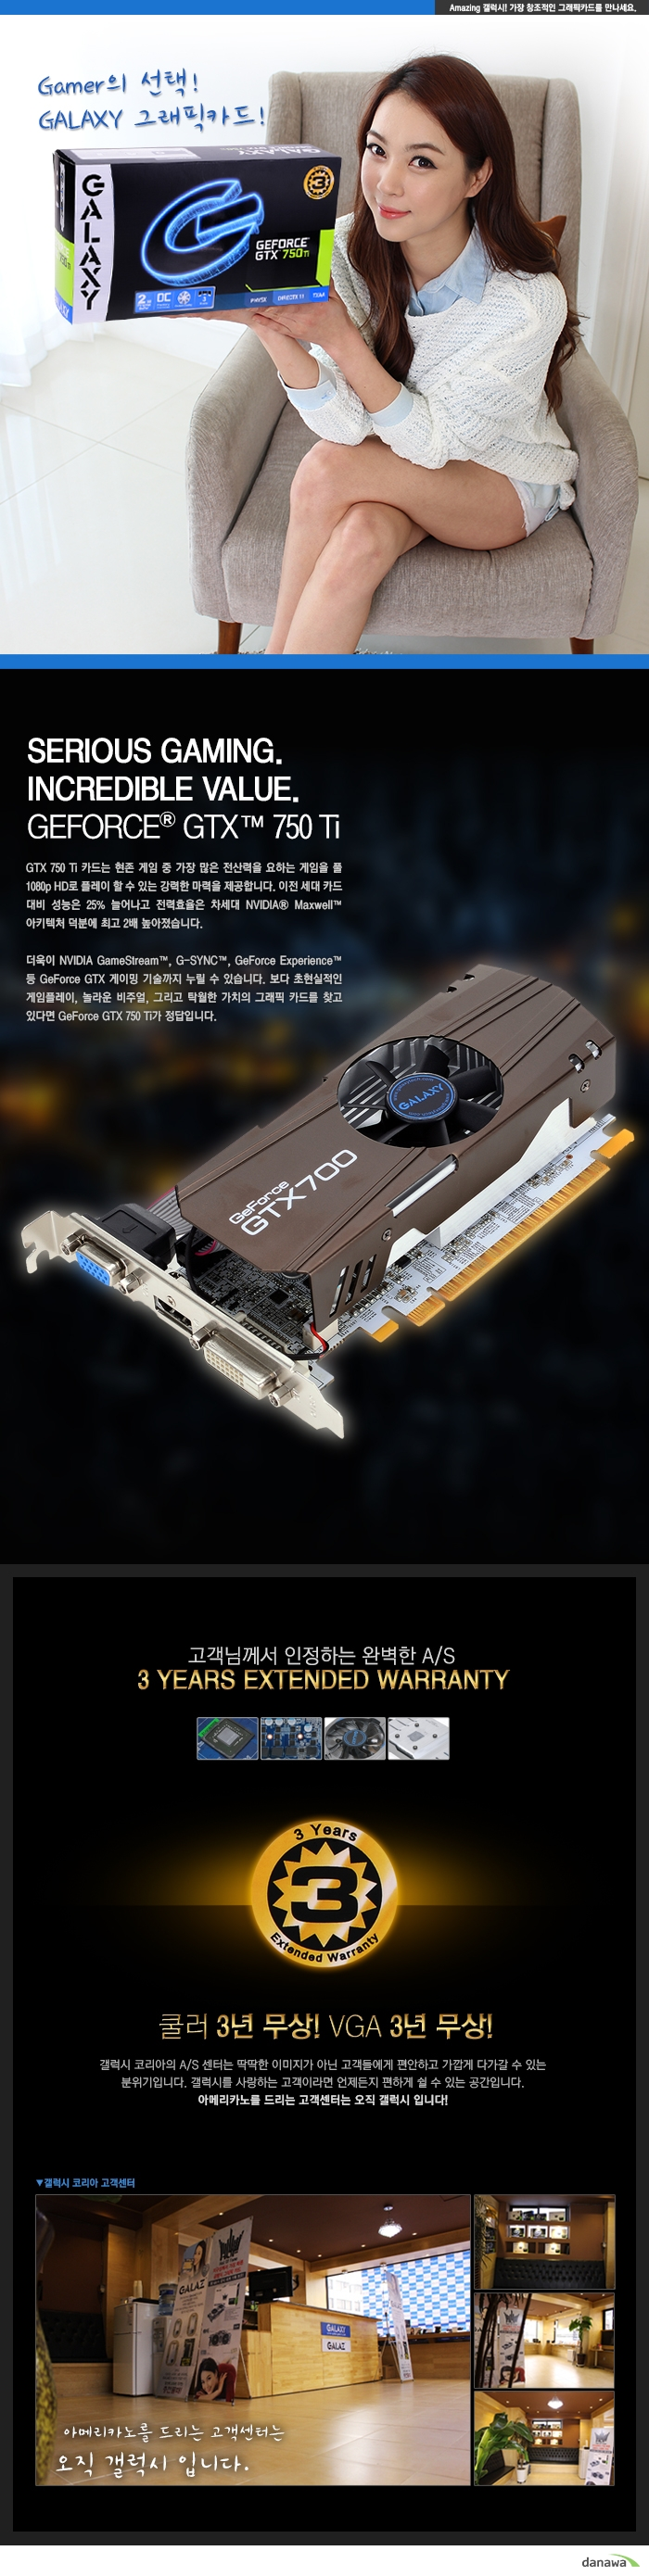 GALAXY ������ GTX750 Ti White OC D5 2GB ��ǰ �Ұ� �� AS ���� �Ұ�